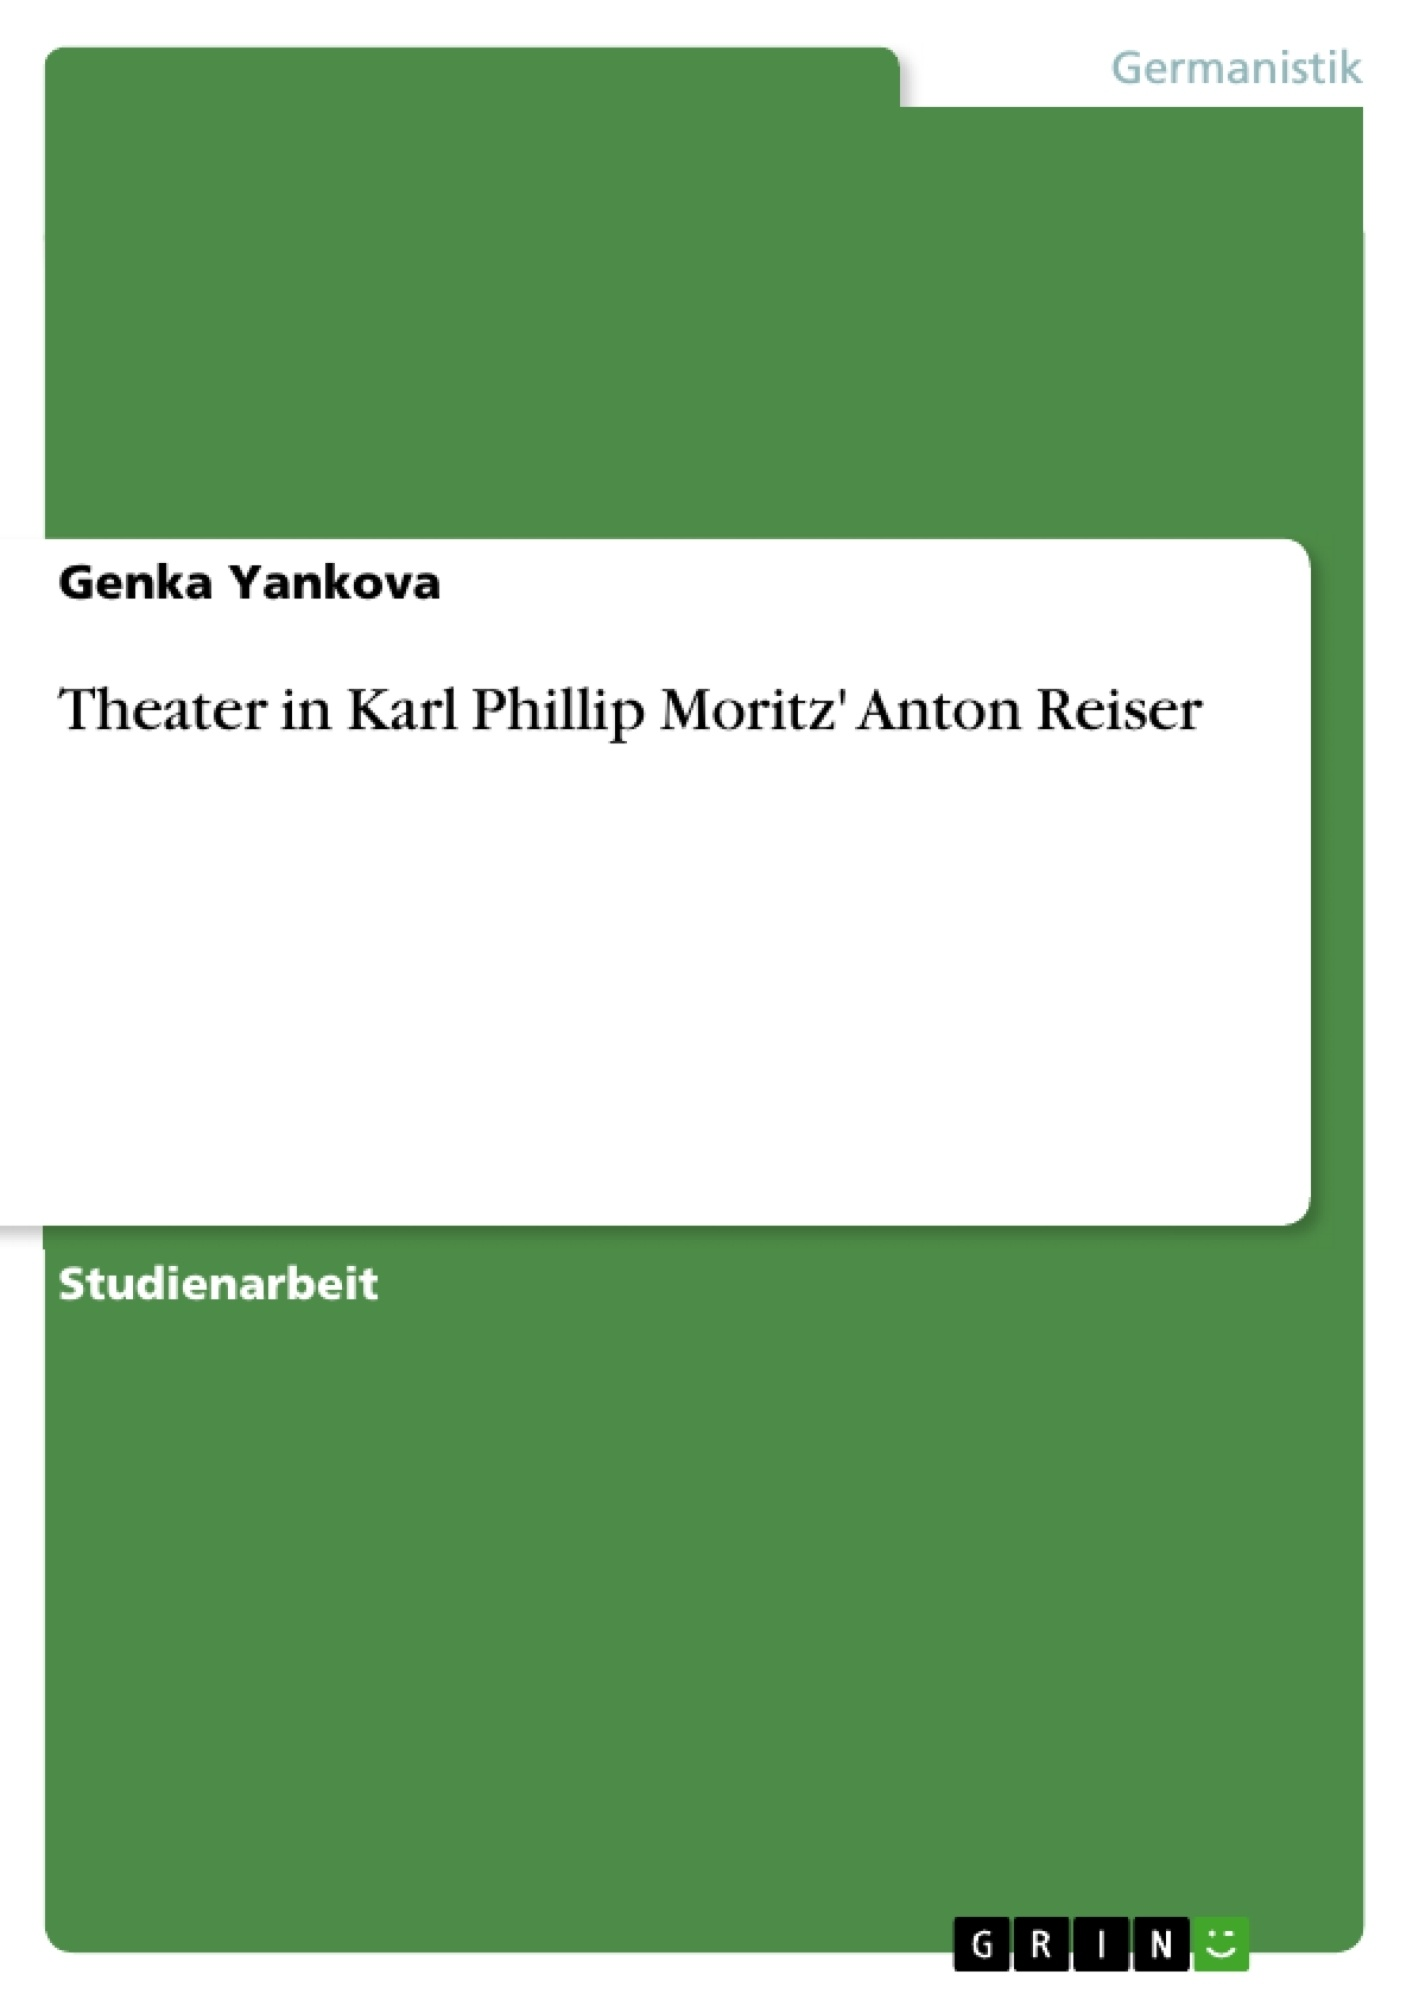 Titel: Theater in Karl Phillip Moritz' Anton Reiser